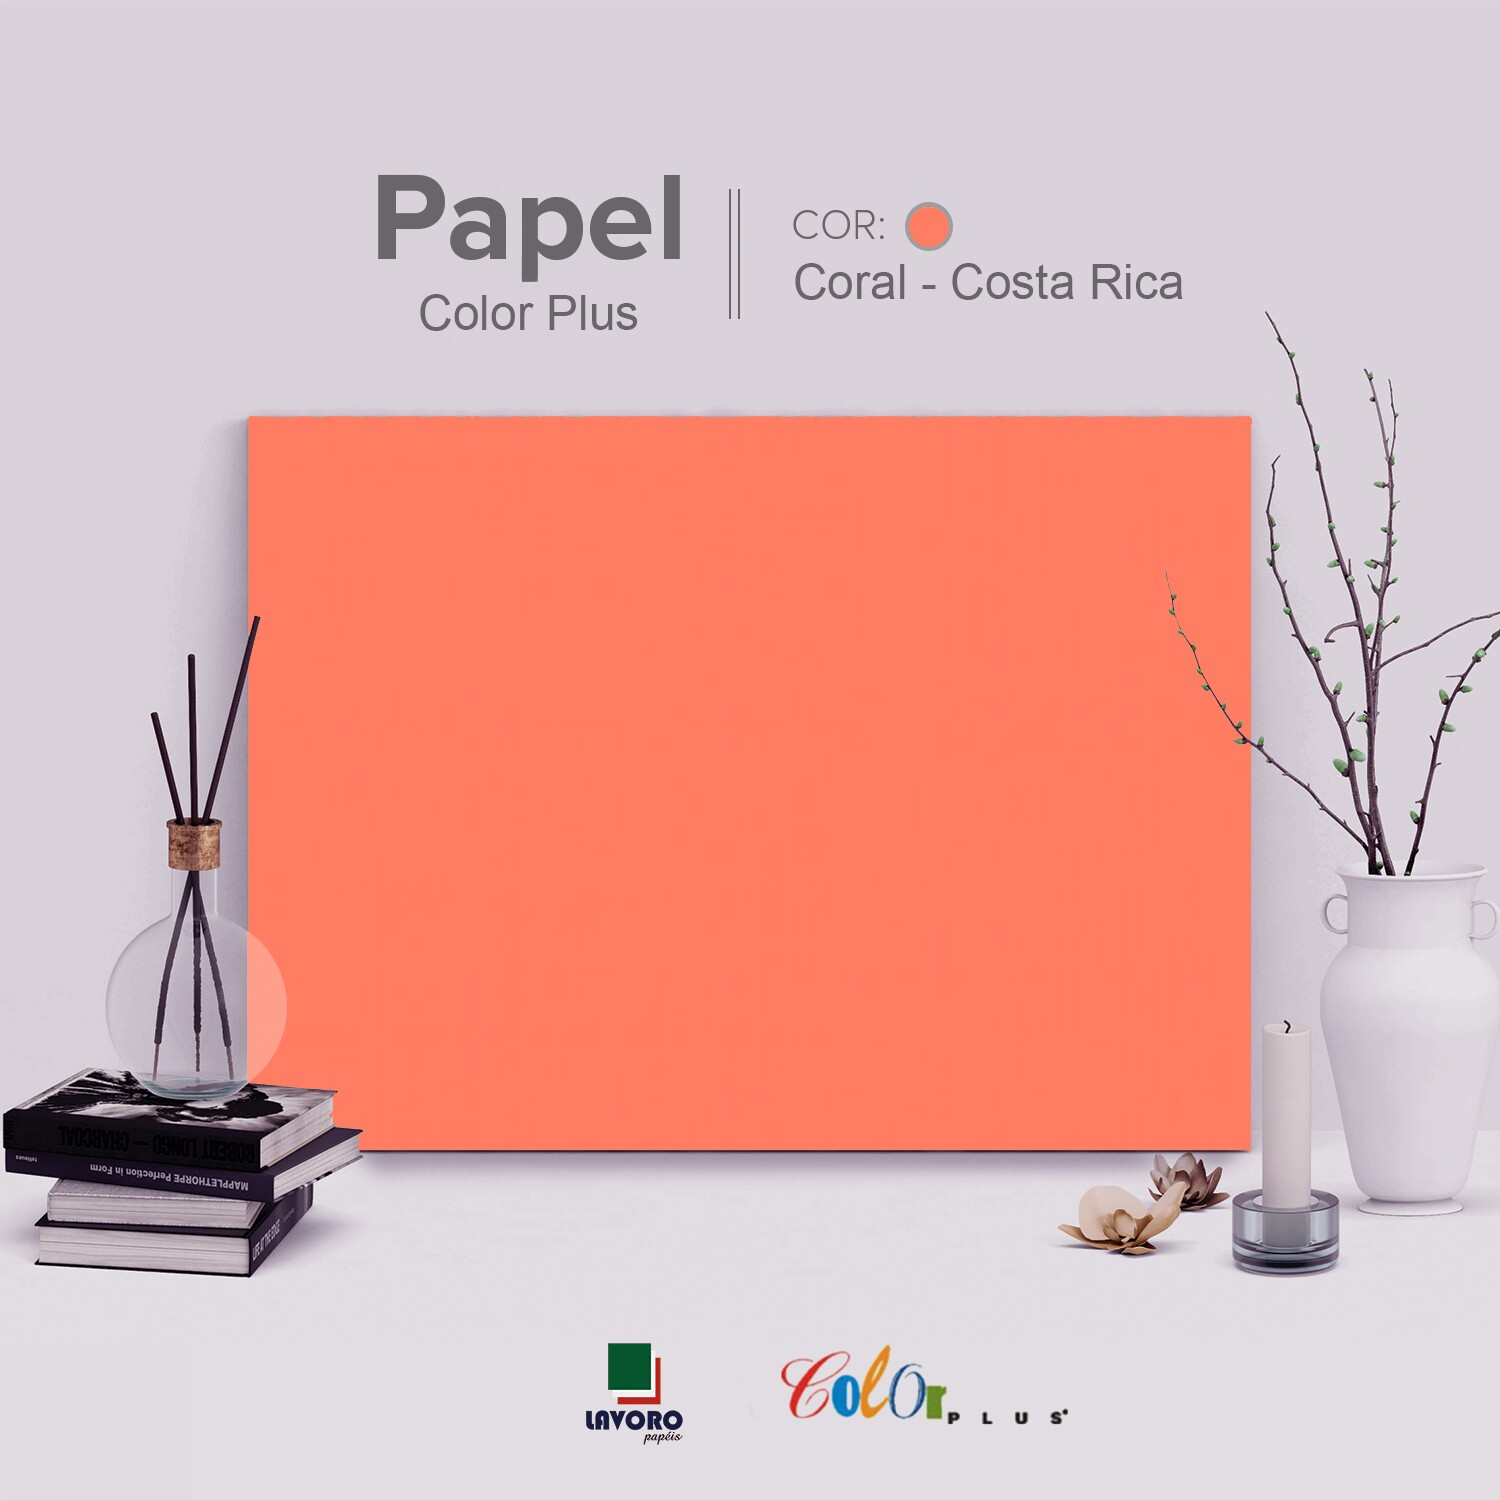 Papel Color Plus - Coral (Costa Rica) - 180g A4 - 25 Folhas